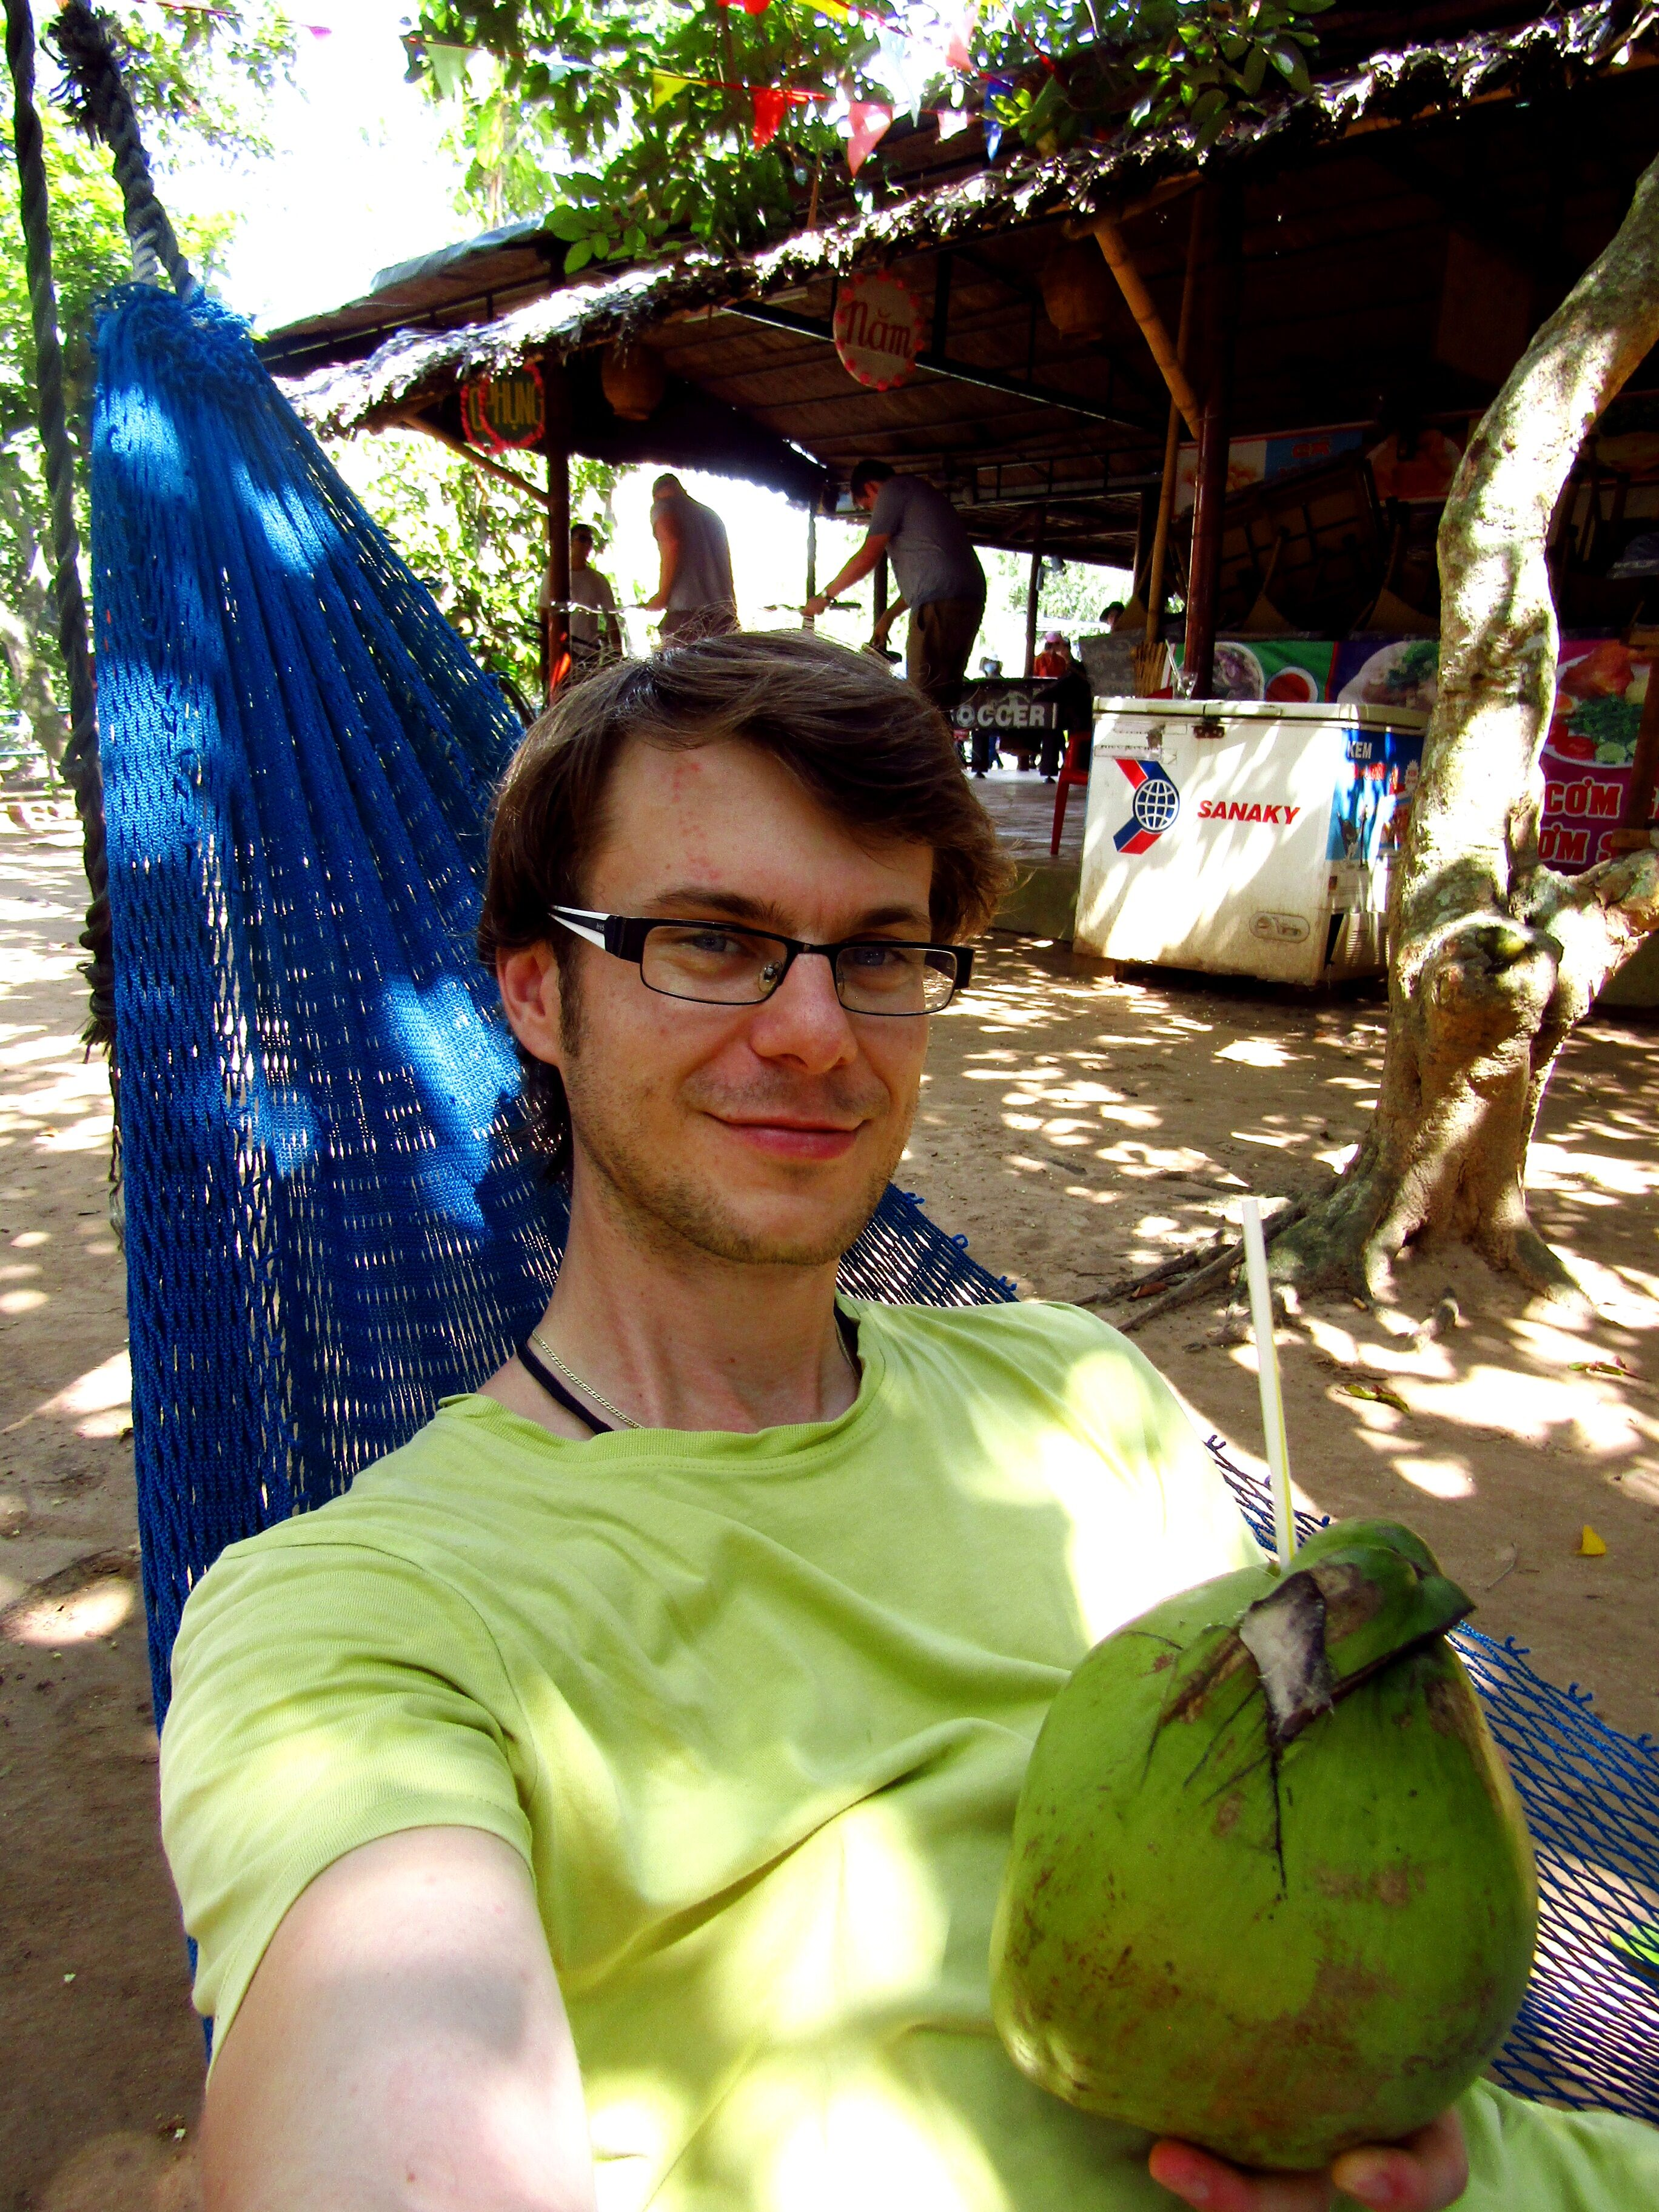 Sipping fresh coconut while chilling in a hammock